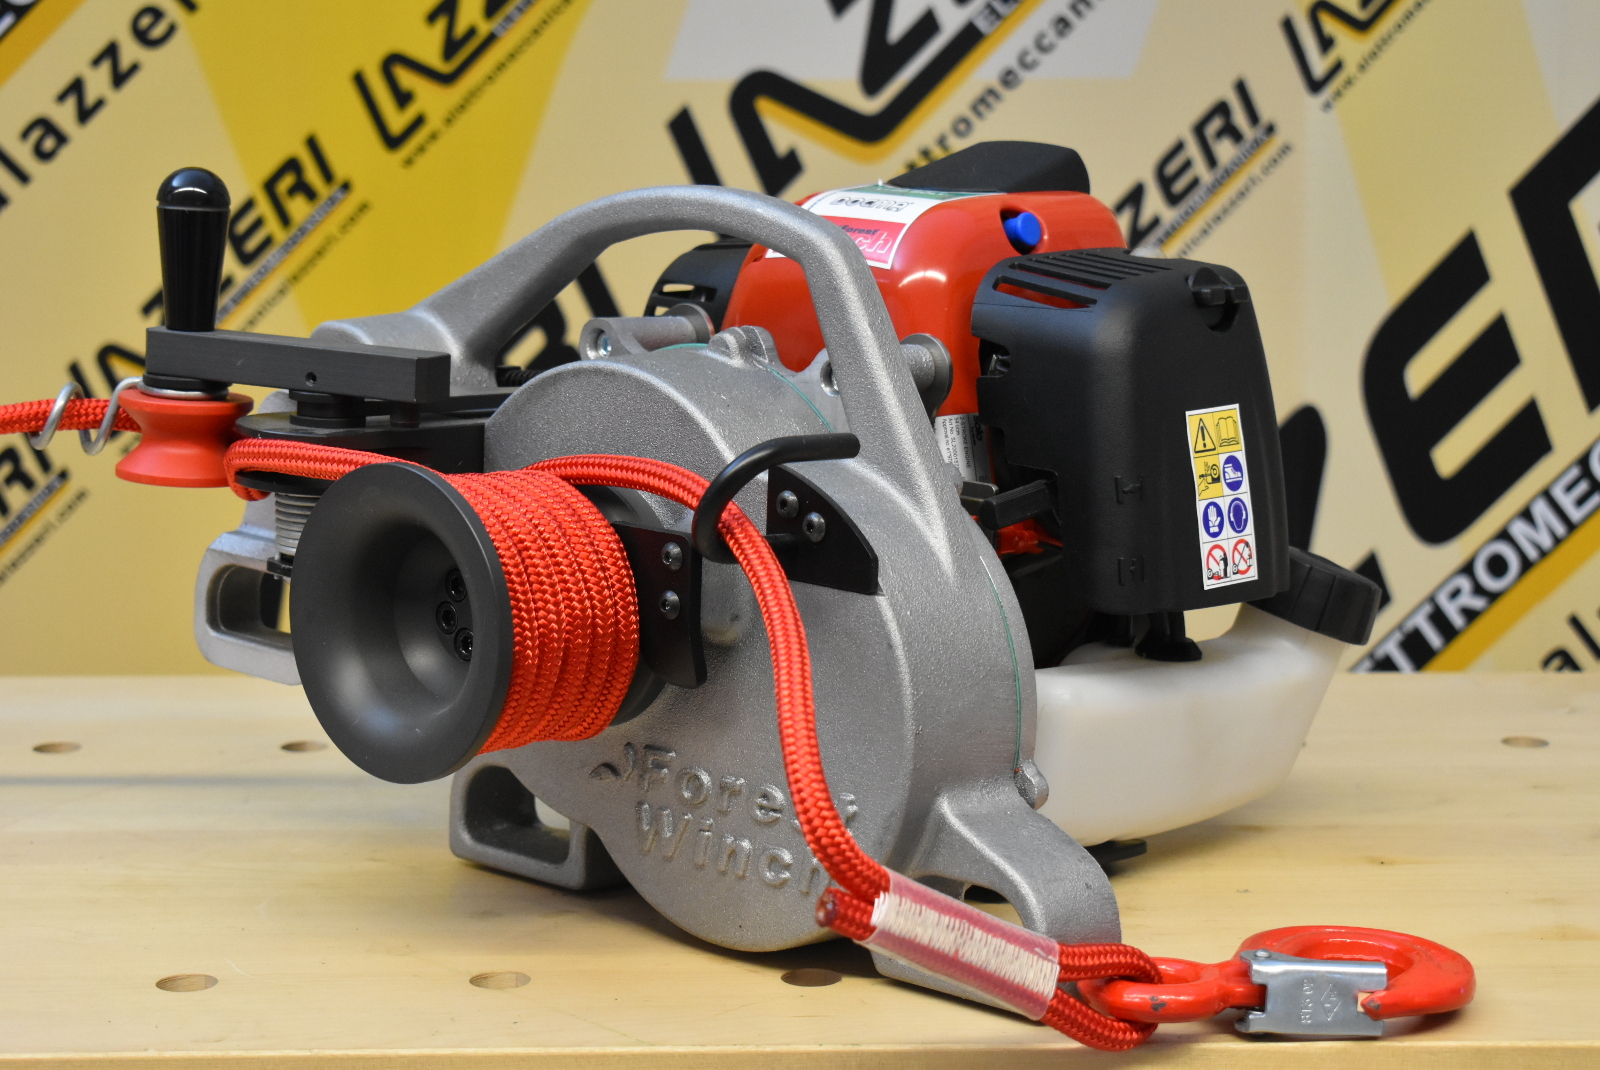 Verricello Forestale Docma Vf80 Bolt Forest Winch